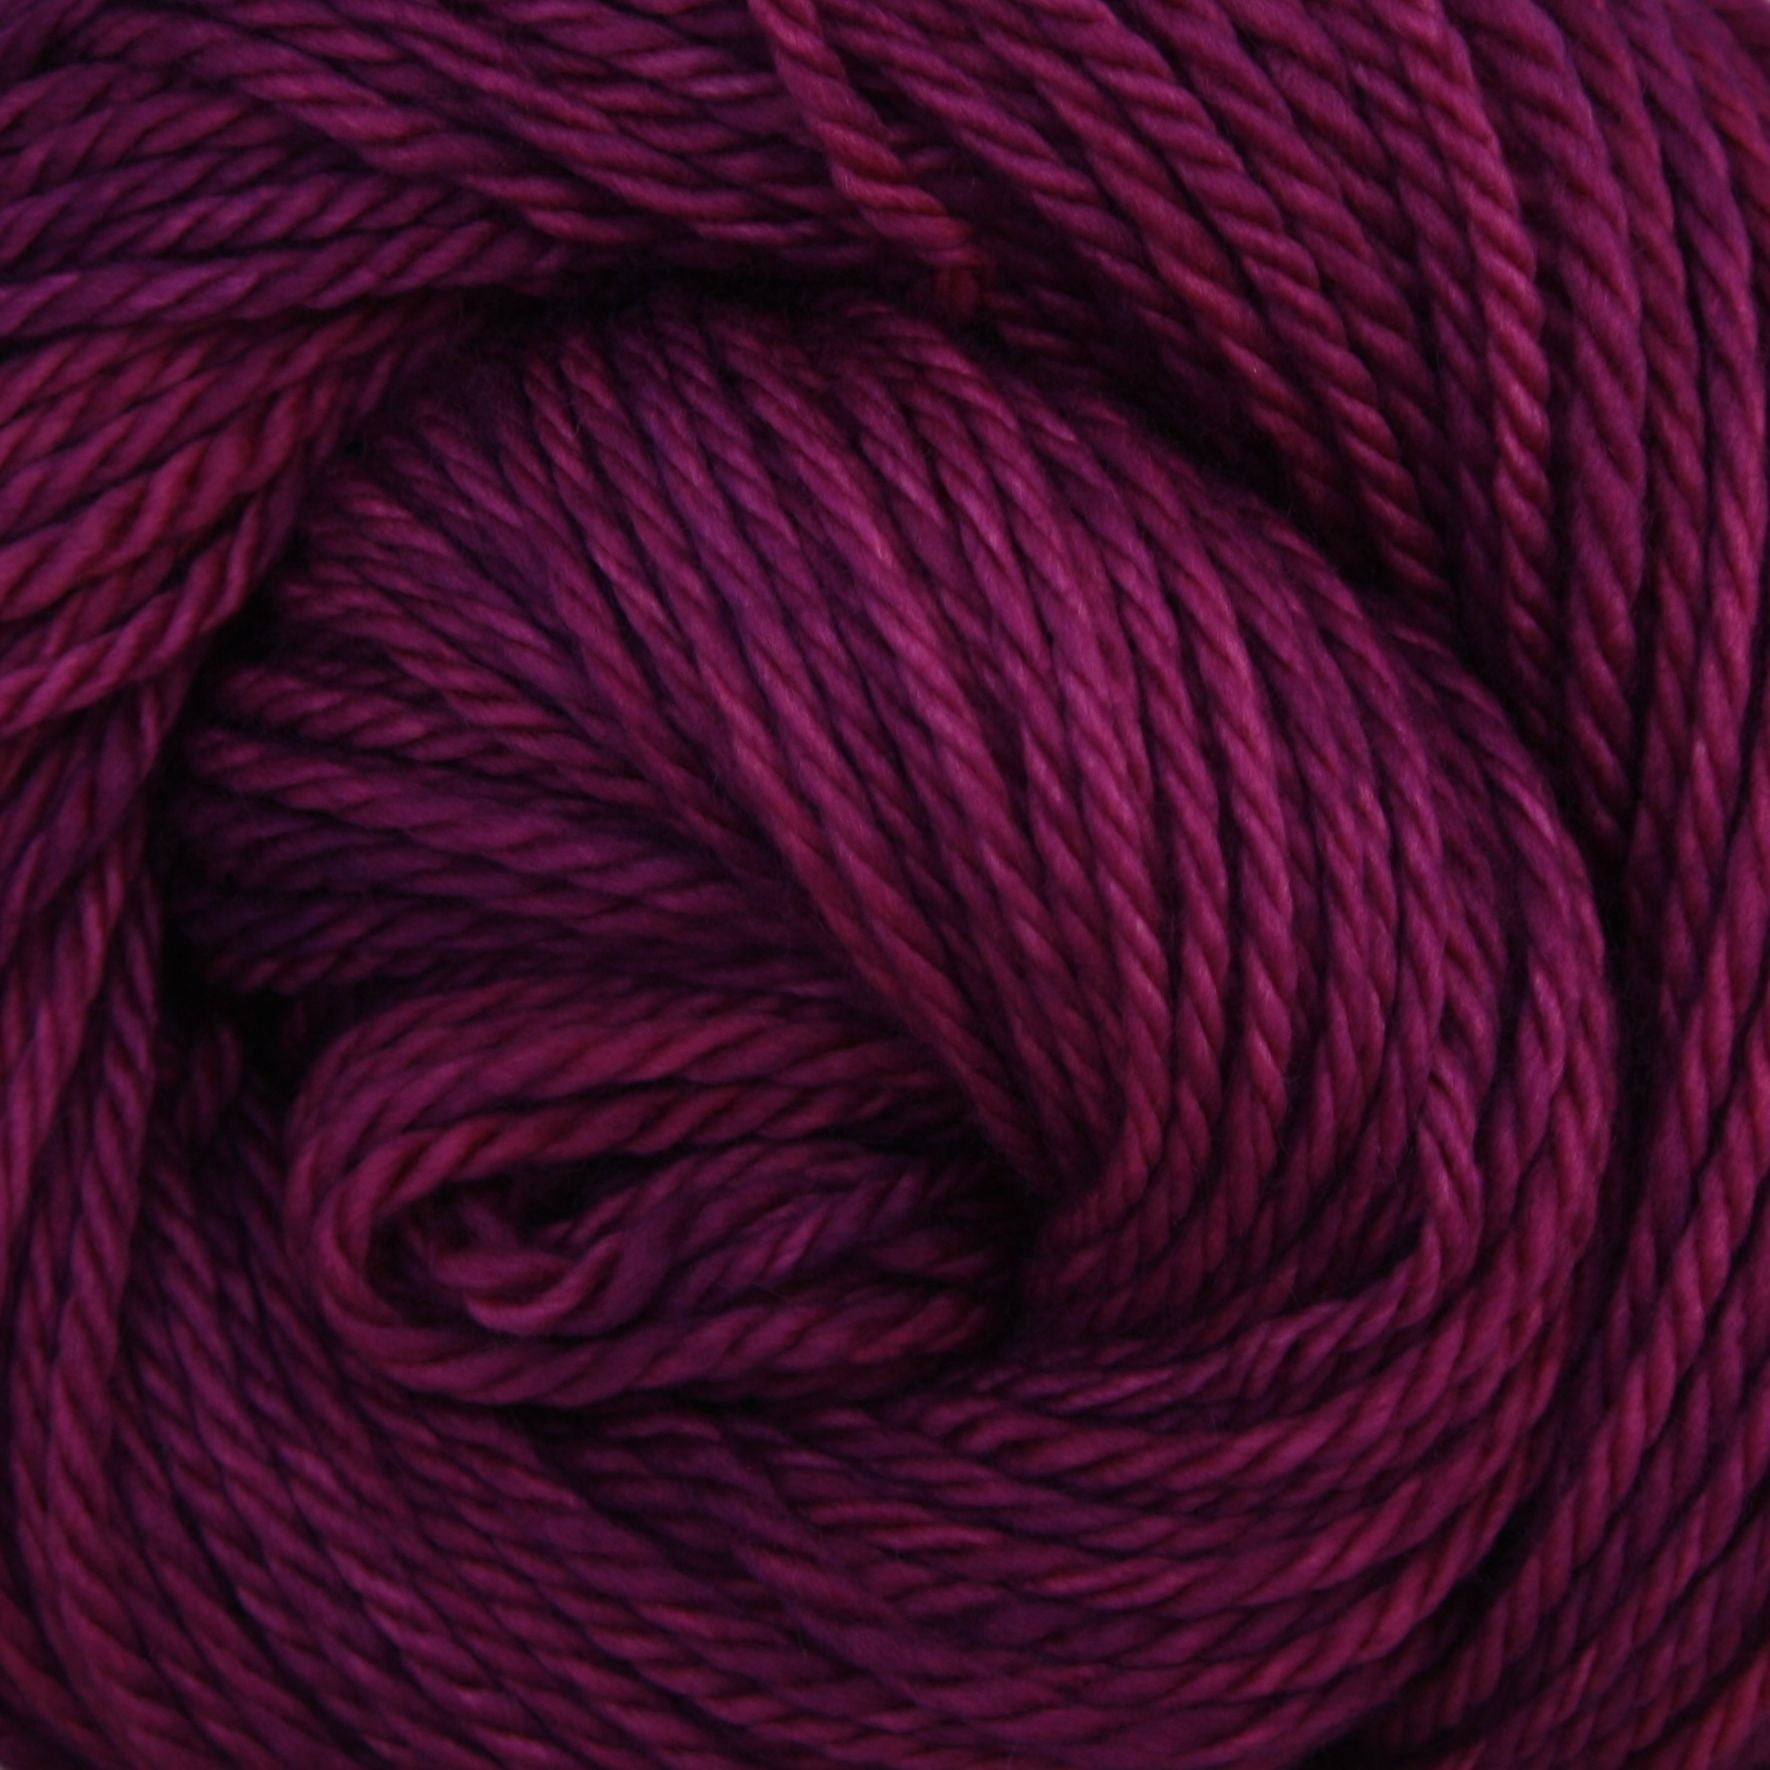 Apollo Yarn | Colorway: Jelly Bean